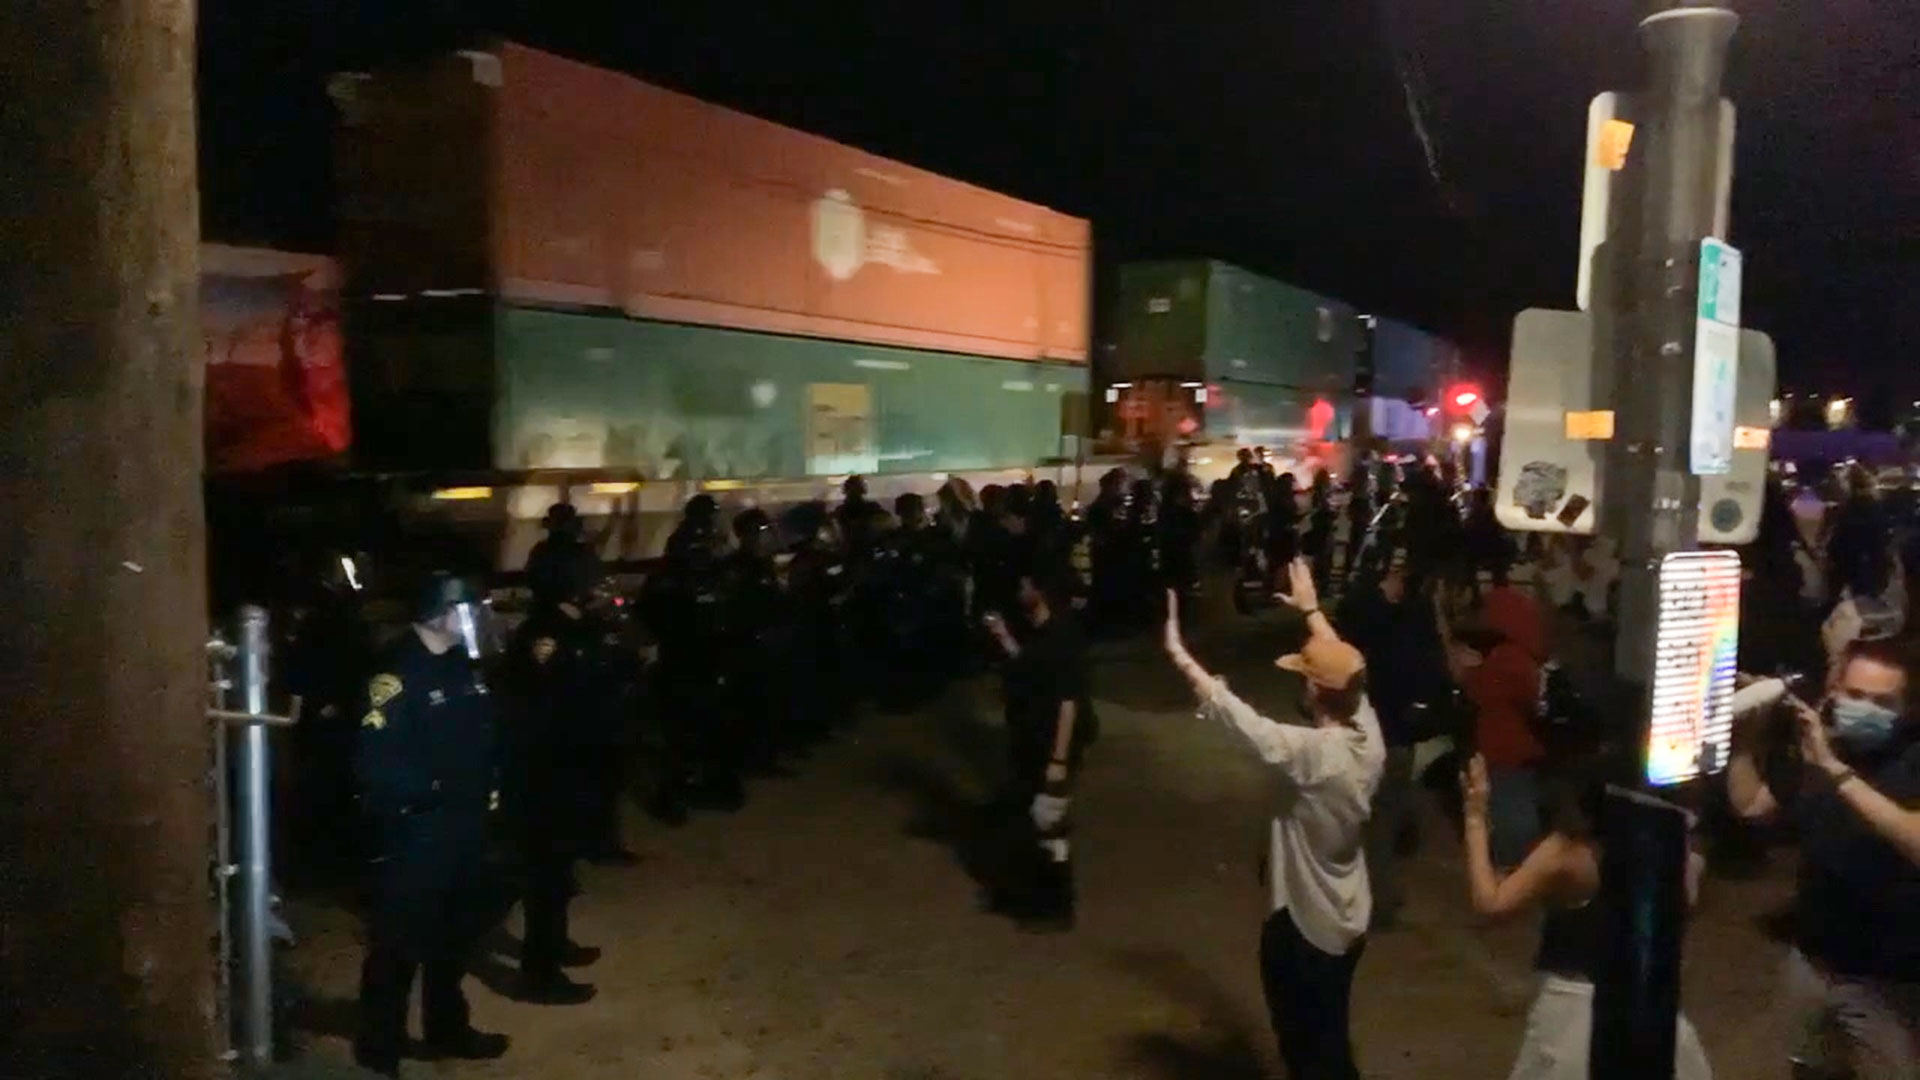 As a train passes, marching demonstrators raise their hands after being stopped by police near downtown Tucson Saturday night in this still image from a video, as protests over the death of George Floyd spread across the country.